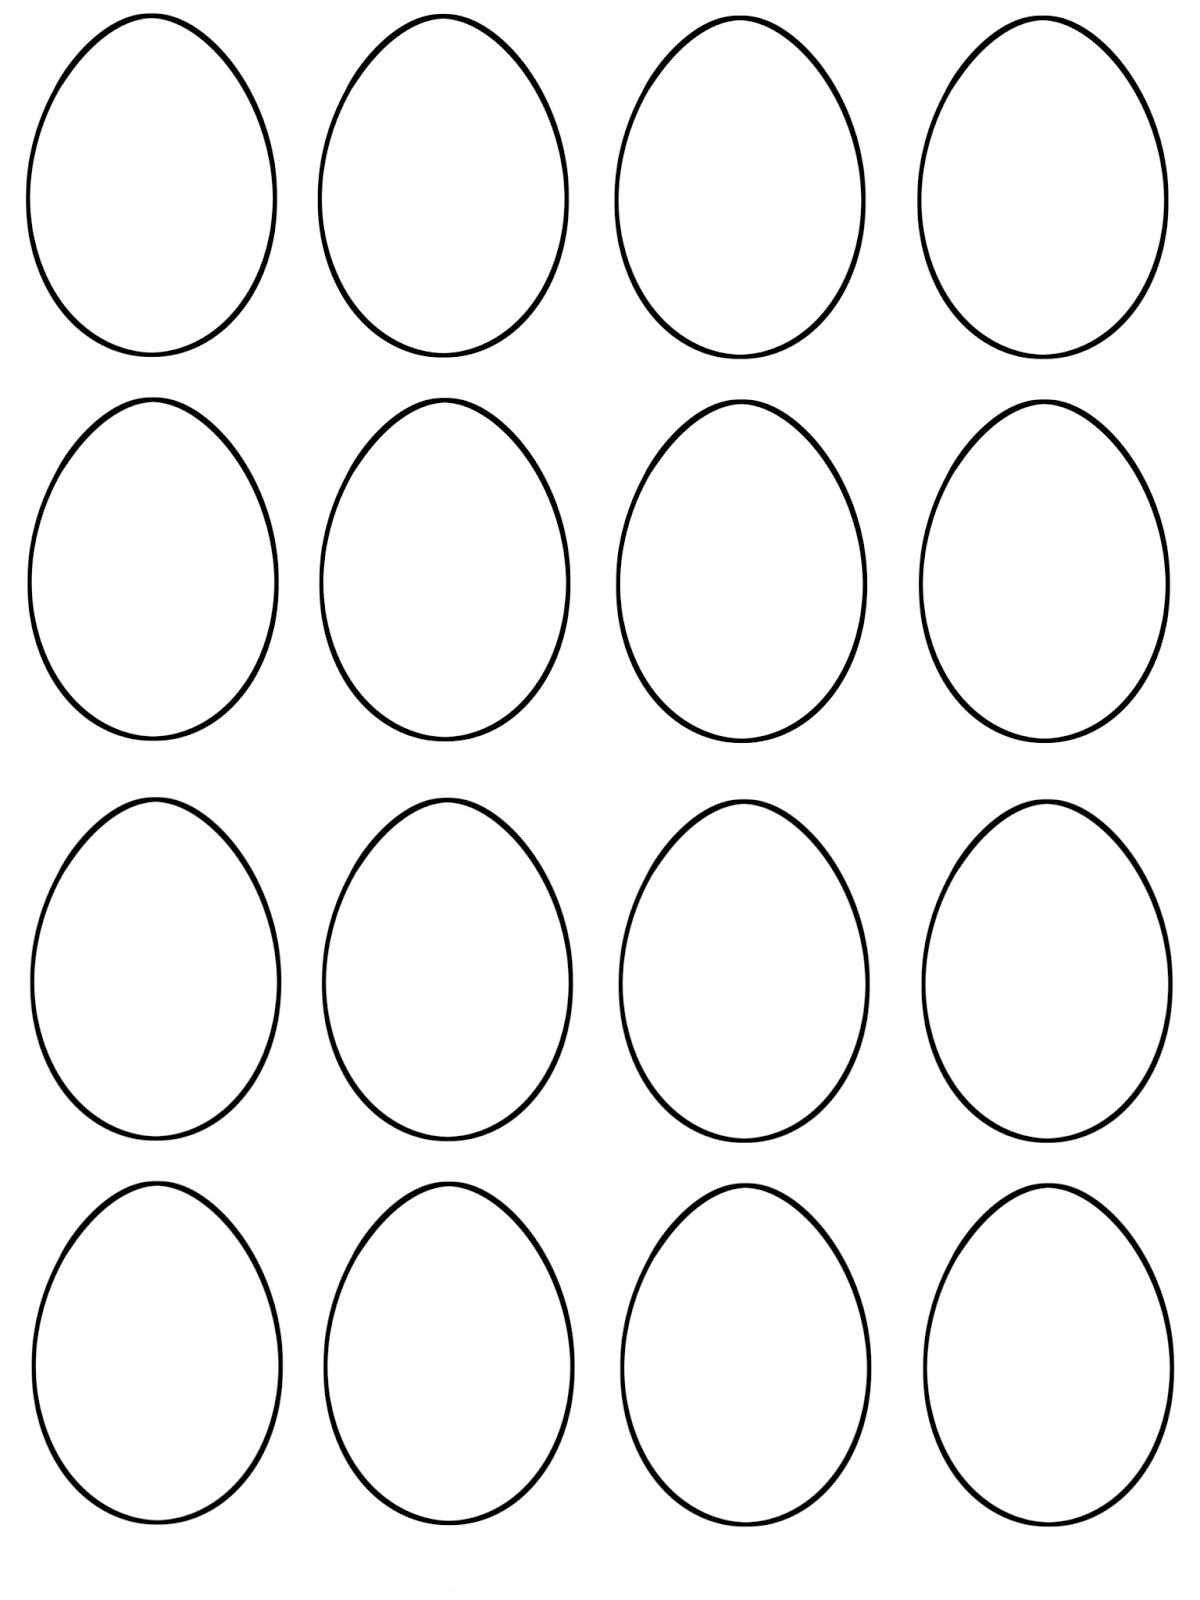 graphic about Easter Egg Template Printable called 5+ Absolutely free Printable Easter Egg Templates Printable Template